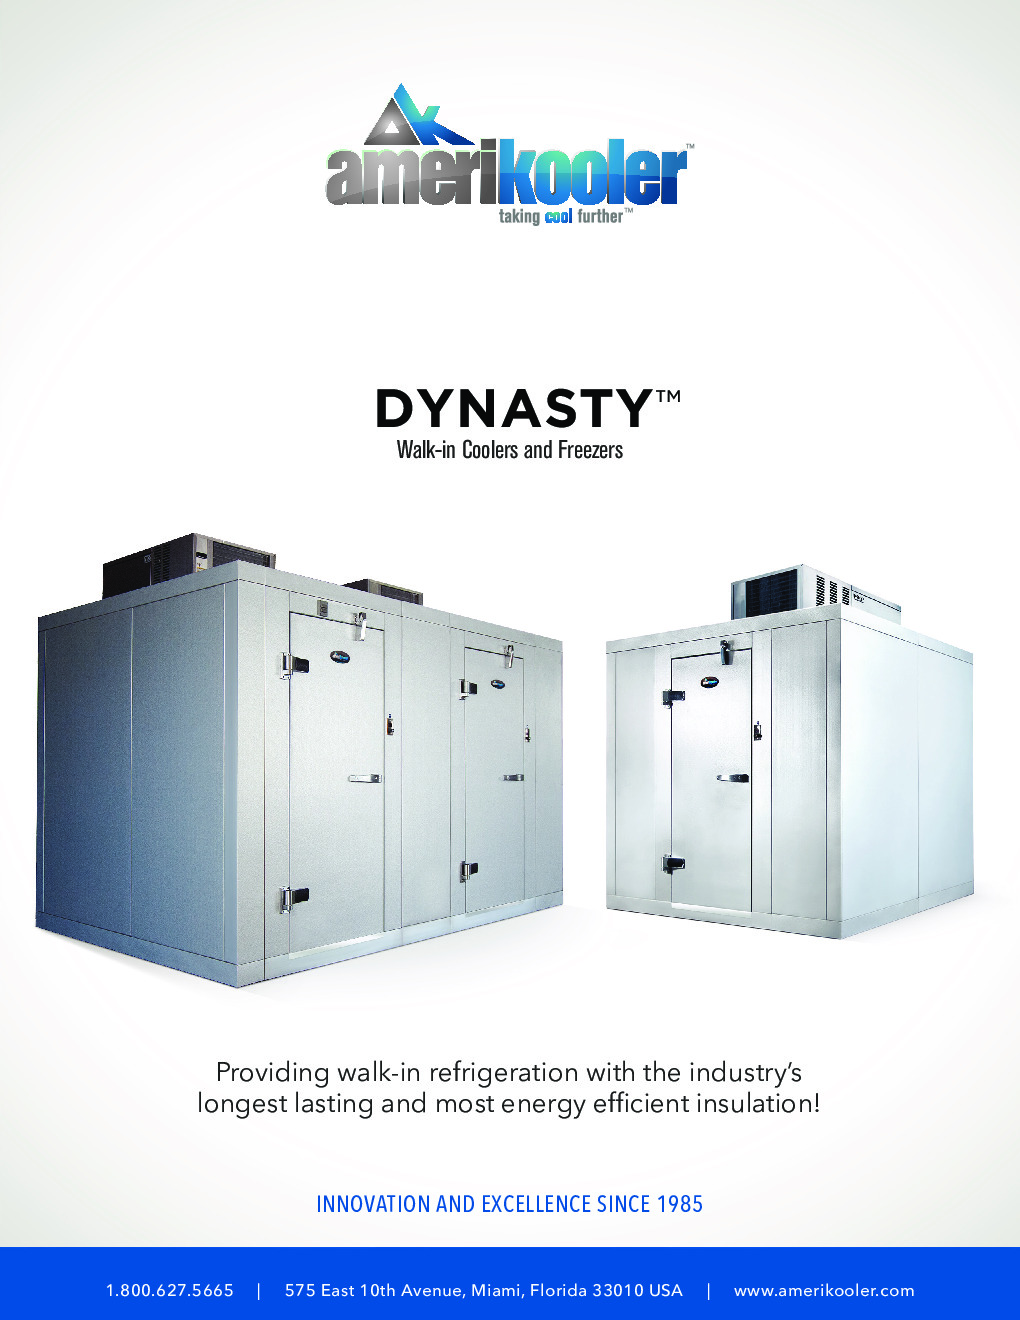 AmeriKooler DW071477N-5/9-SC 7' X 14' Walk-In Cooler, 9' L Cooler without Floor and 5' L Freezer, Self Contained